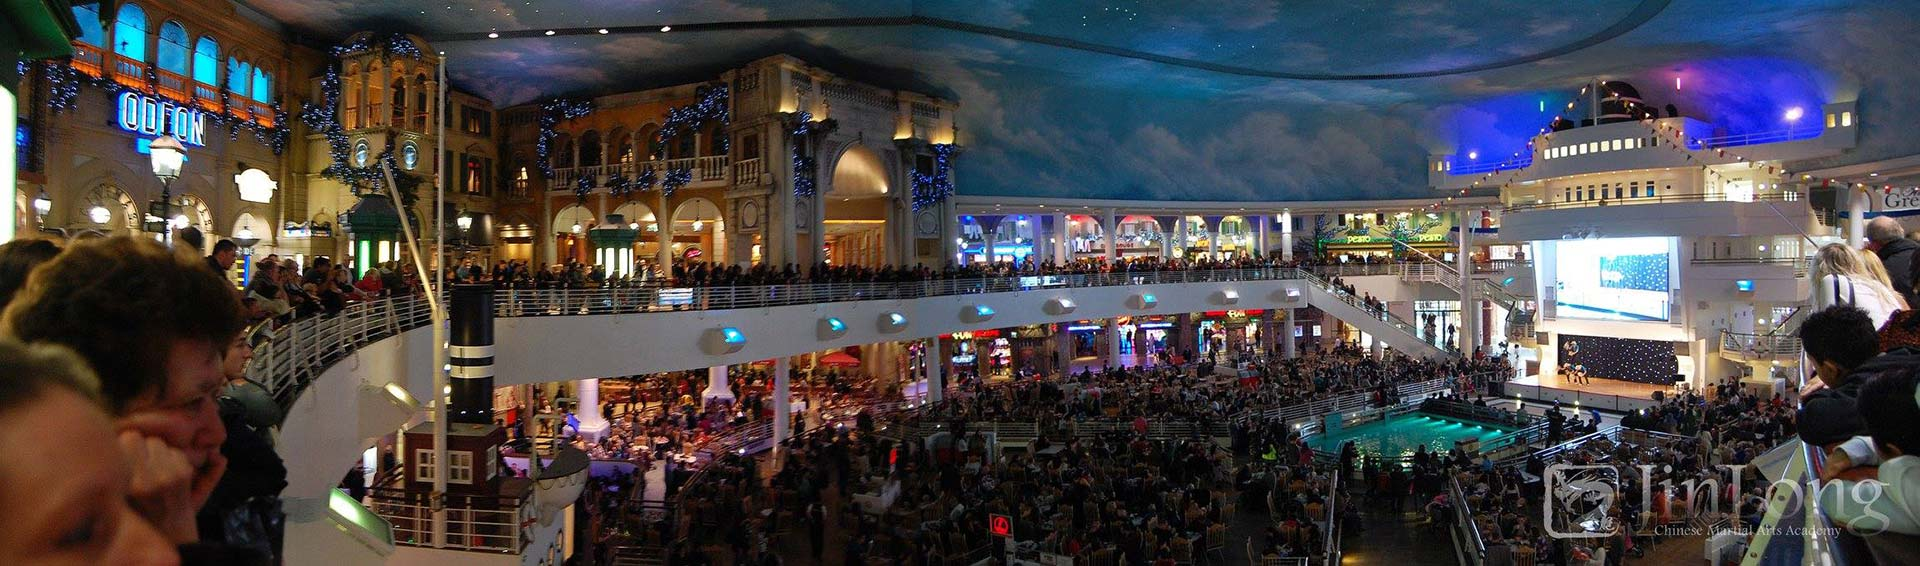 Trafford Centre Chinese New Year Show